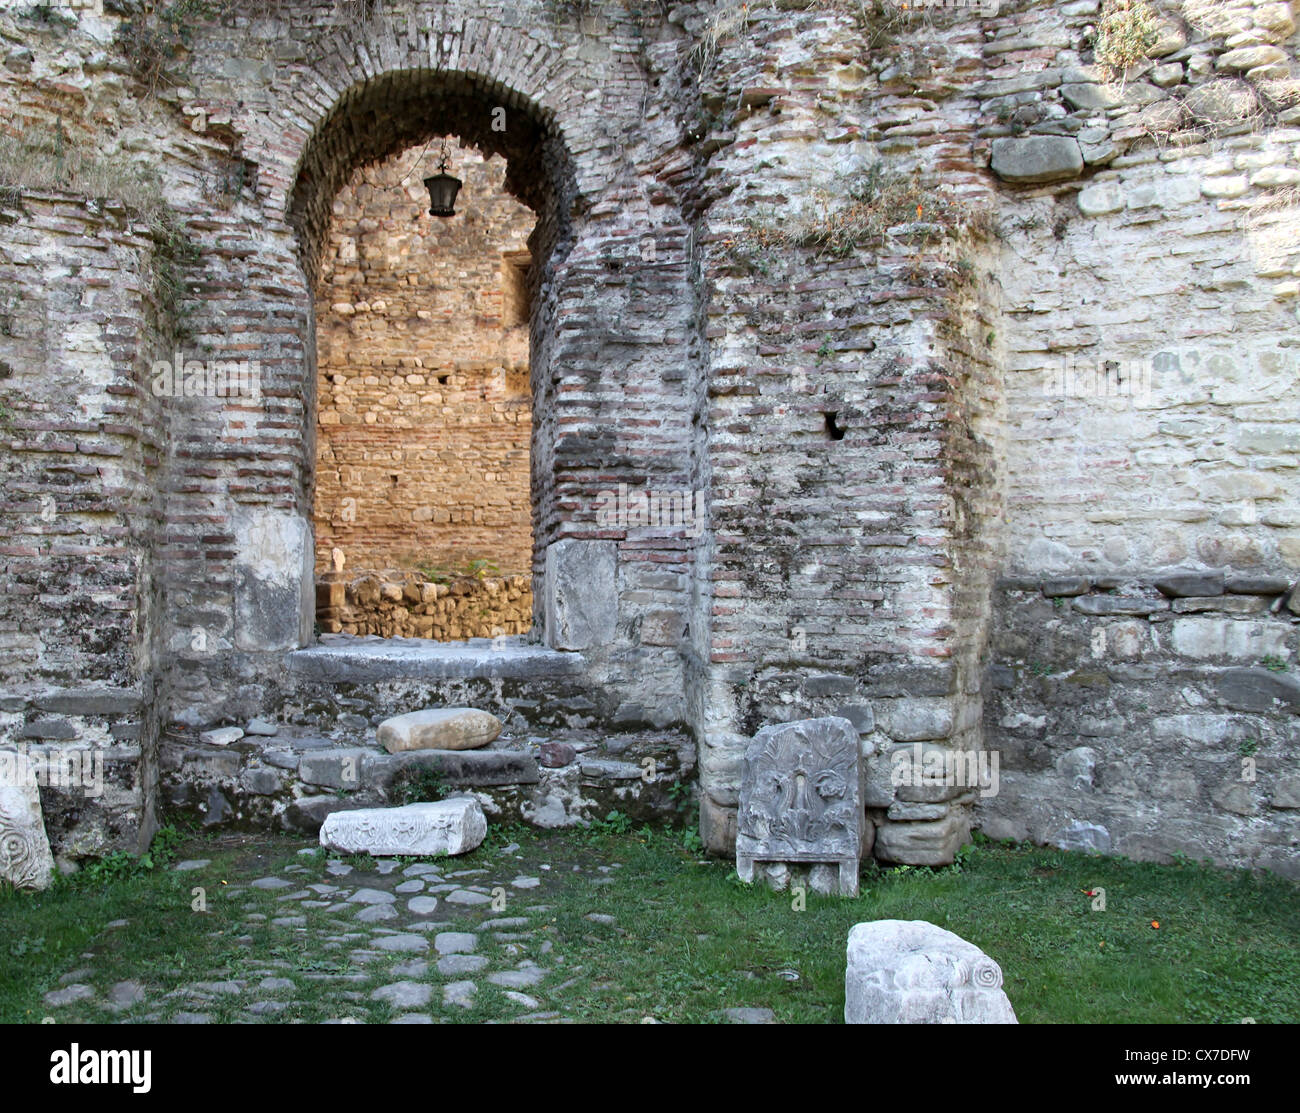 The Fortress of Elbasan in Central Albania - Stock Image